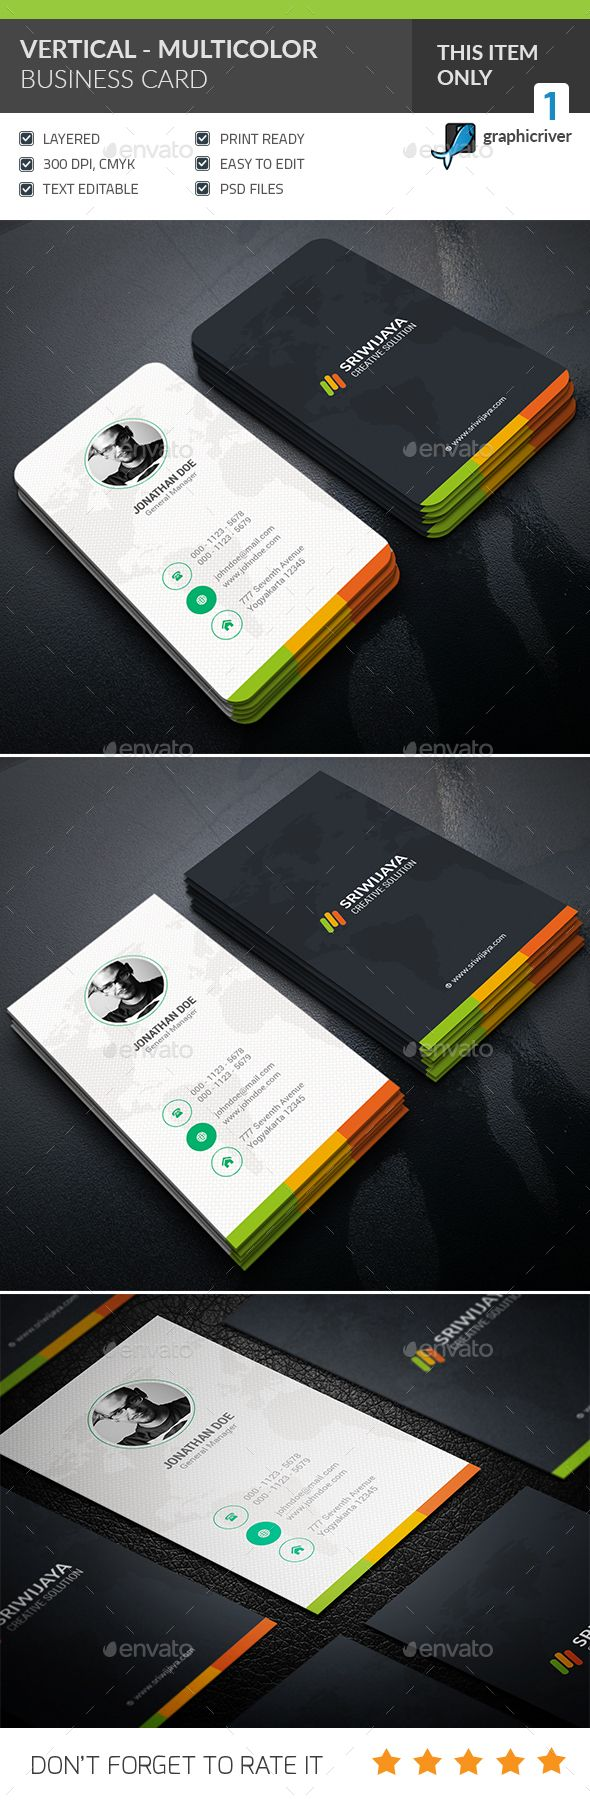 Vertical Multicolor Business card — Photoshop PSD #unique #psd • Available here → https://graphicriver.net/item/vertical-multicolor-business-card-/16228280?ref=pxcr